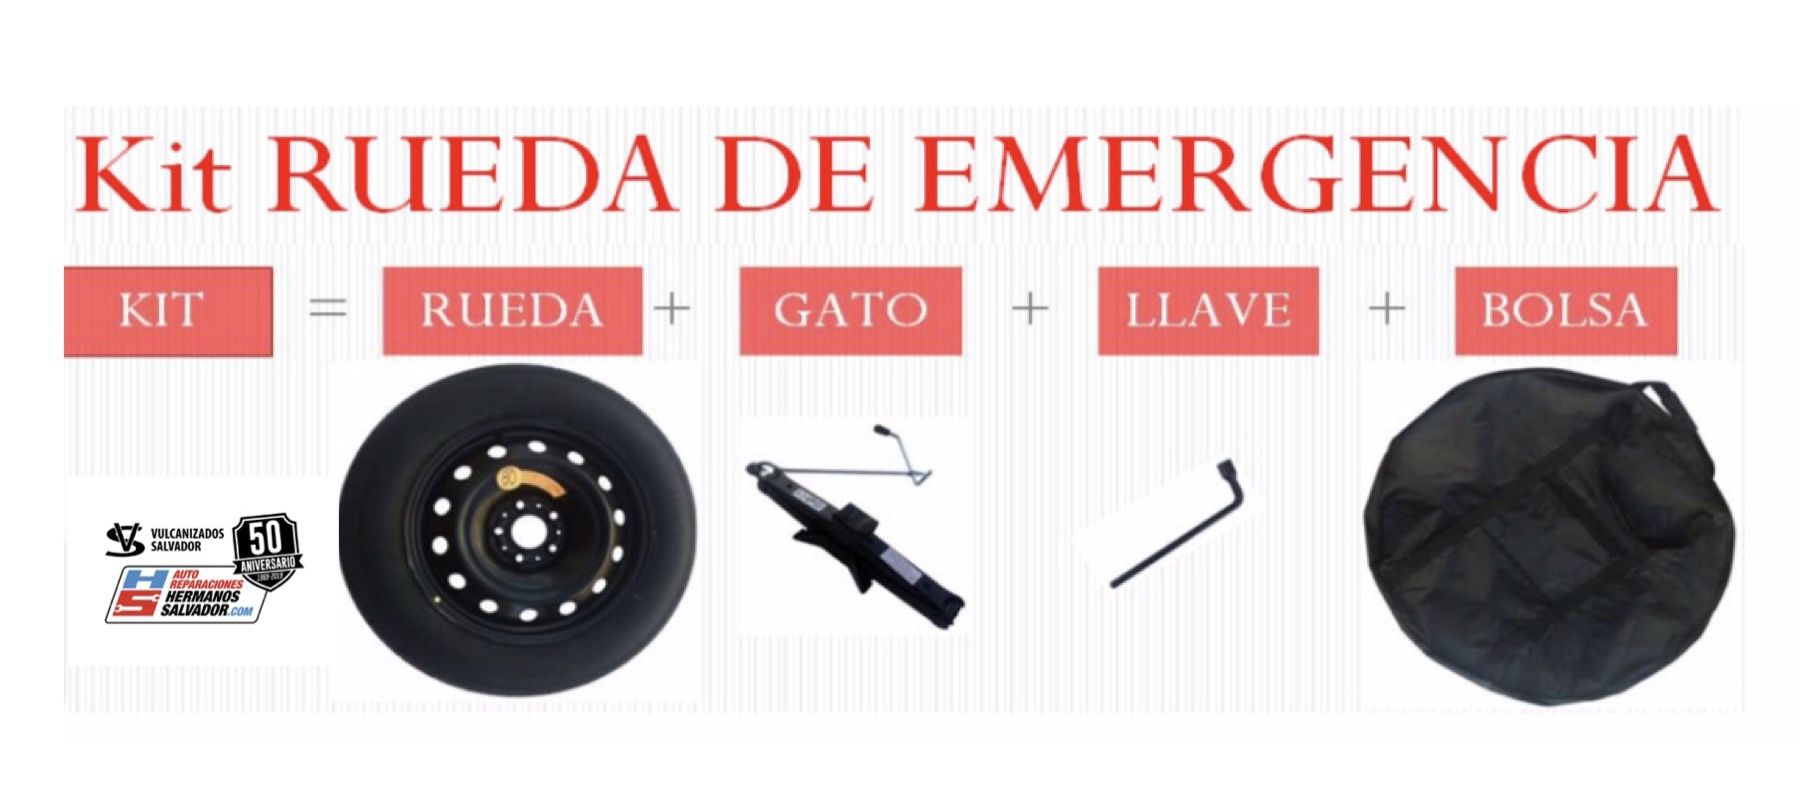 KIT RUEDA DE EMERGENCIA